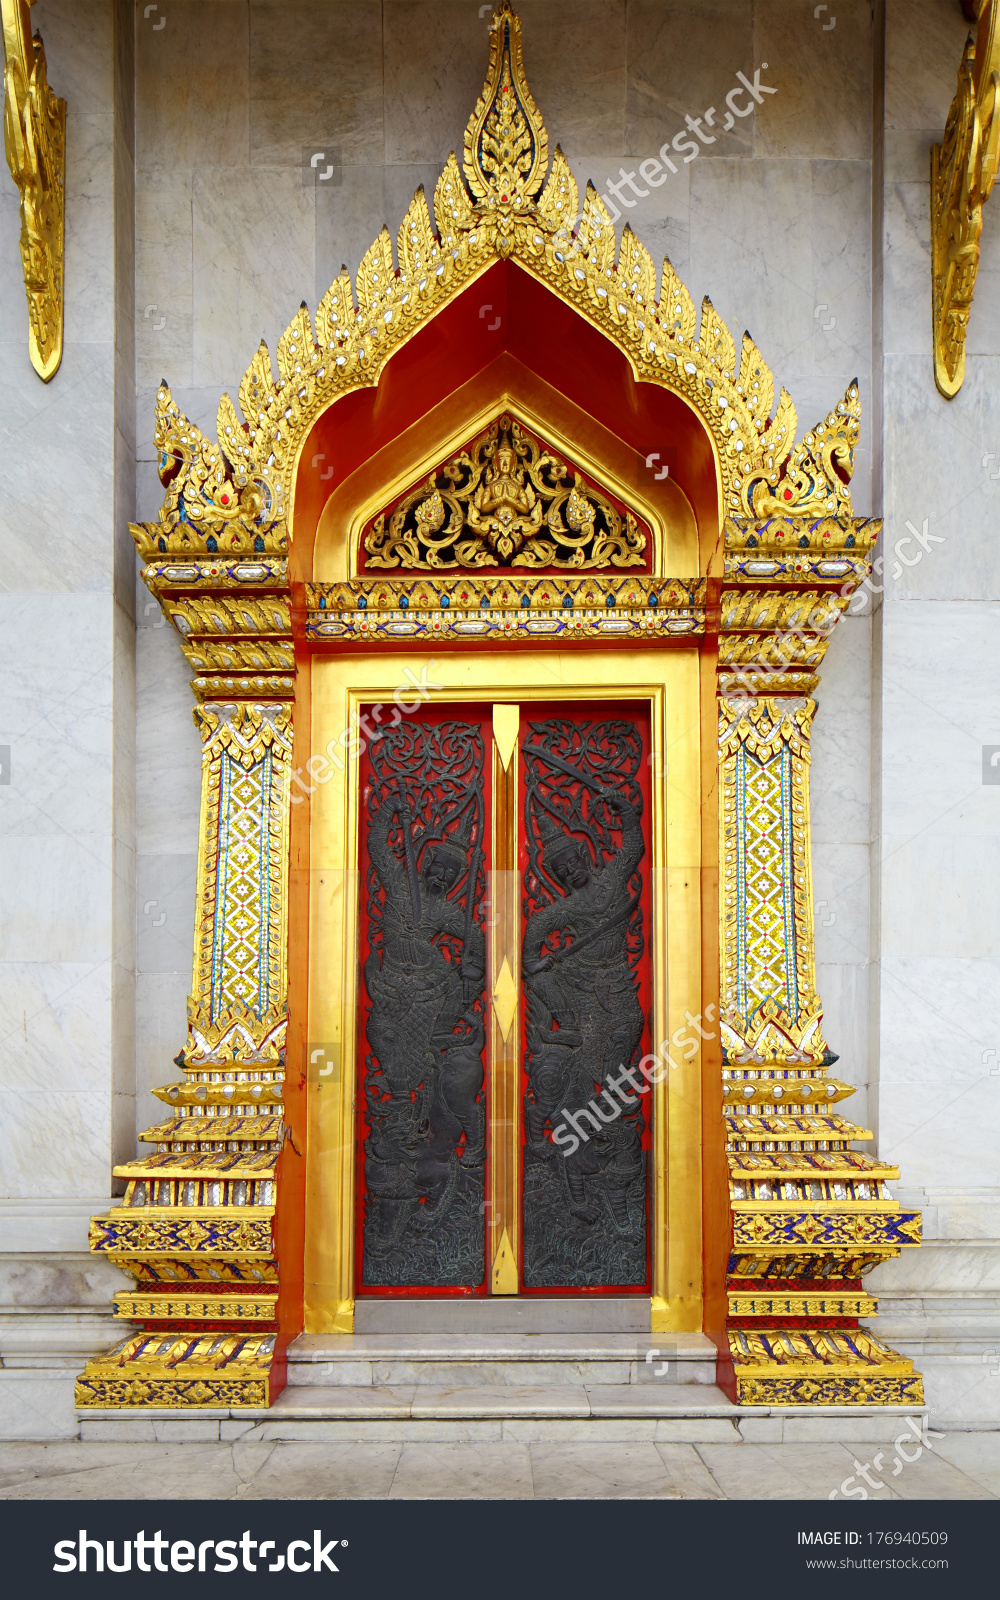 Thailand Temple Entrance Stock Photo 176940509.